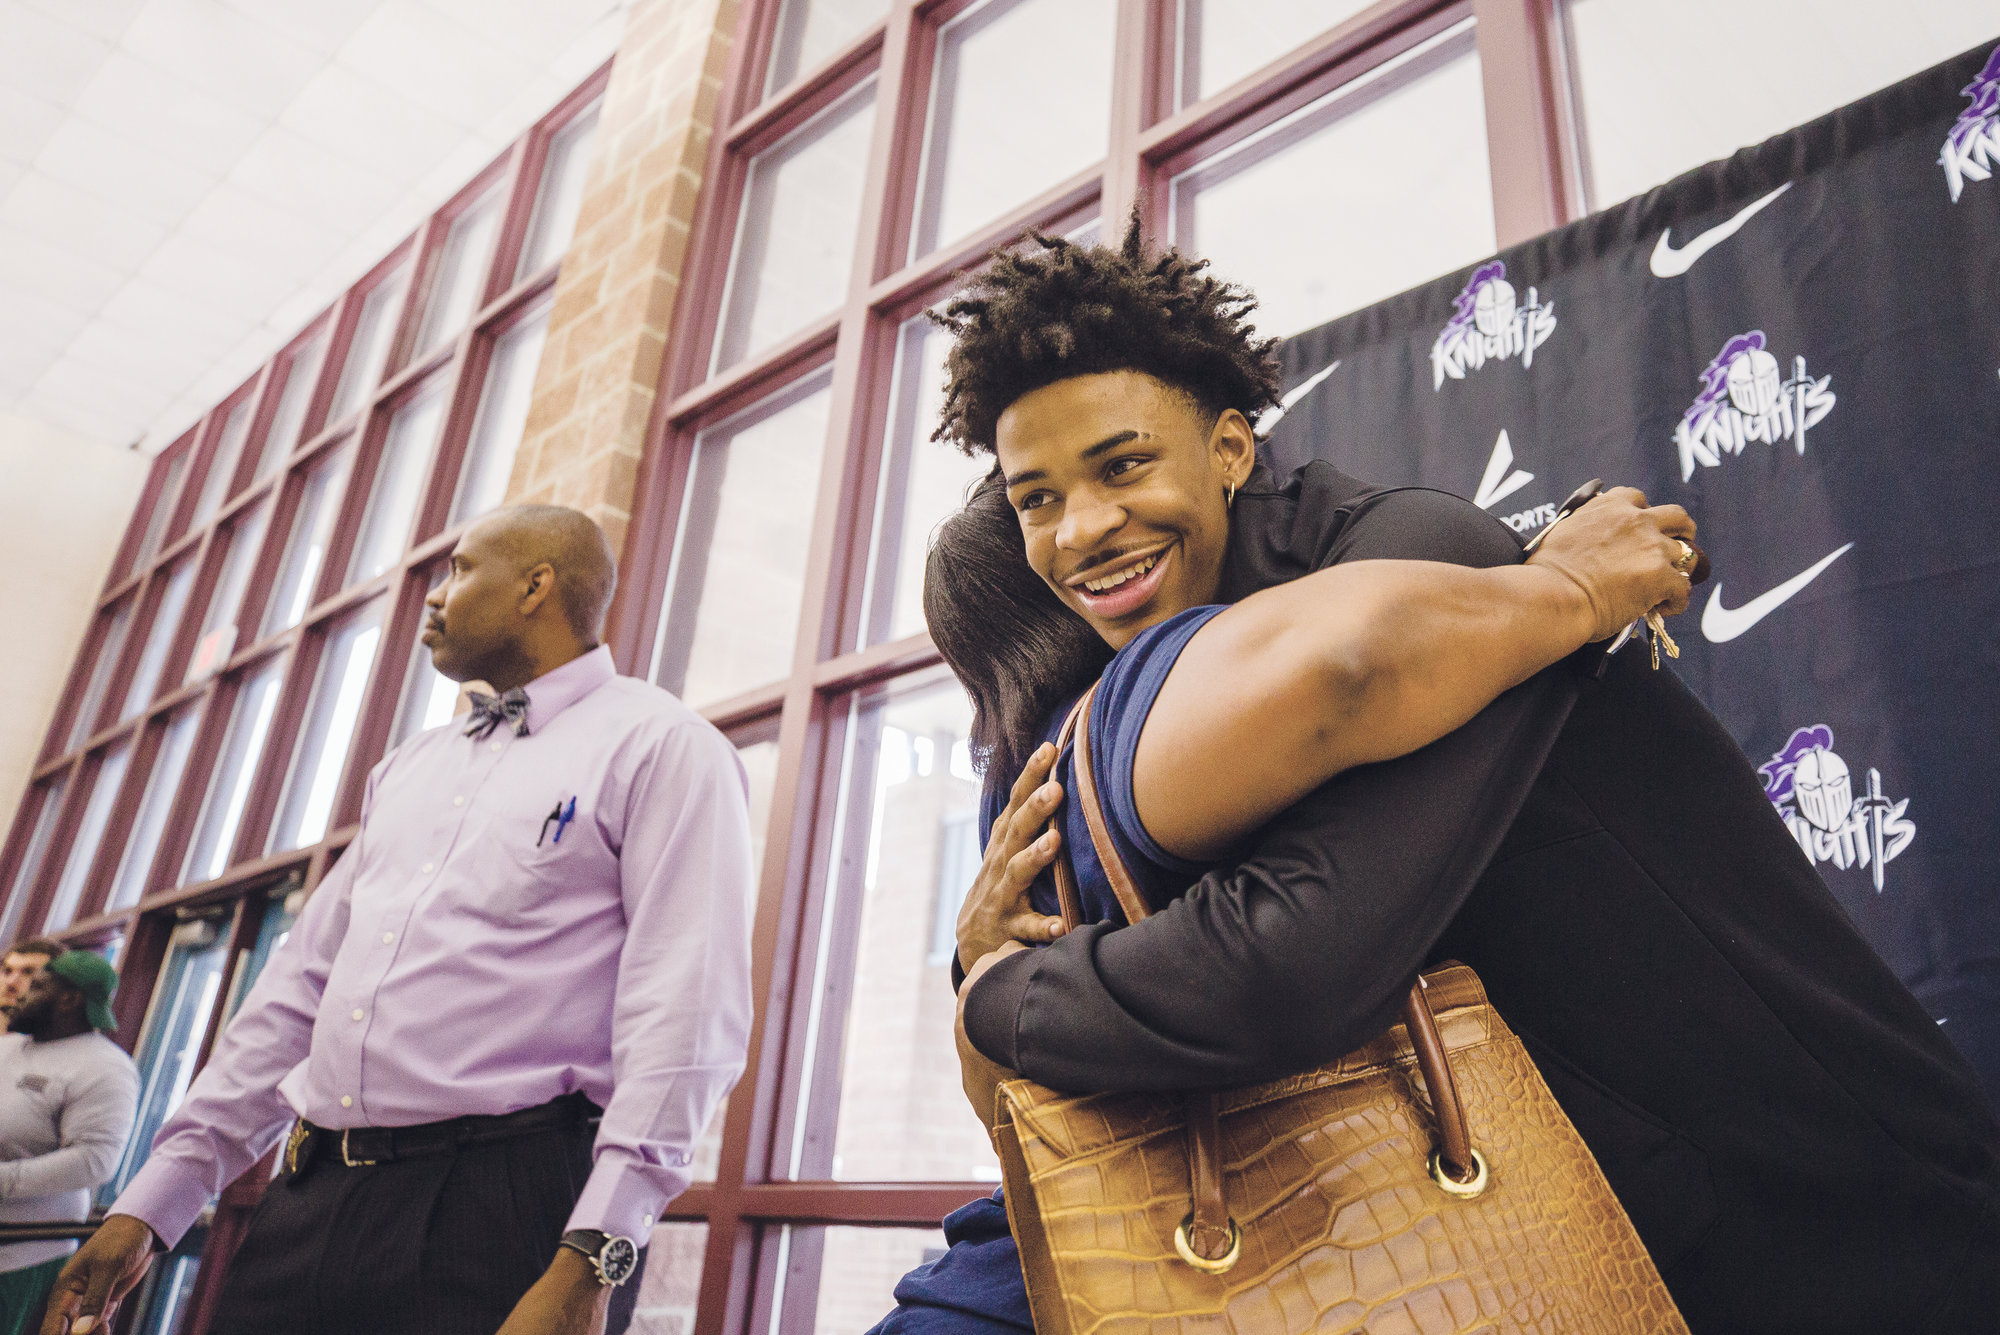 Morant hugs a fan during the Ja Morant Day celebration at Crestwood High School, Morant's alma mater, on Monday